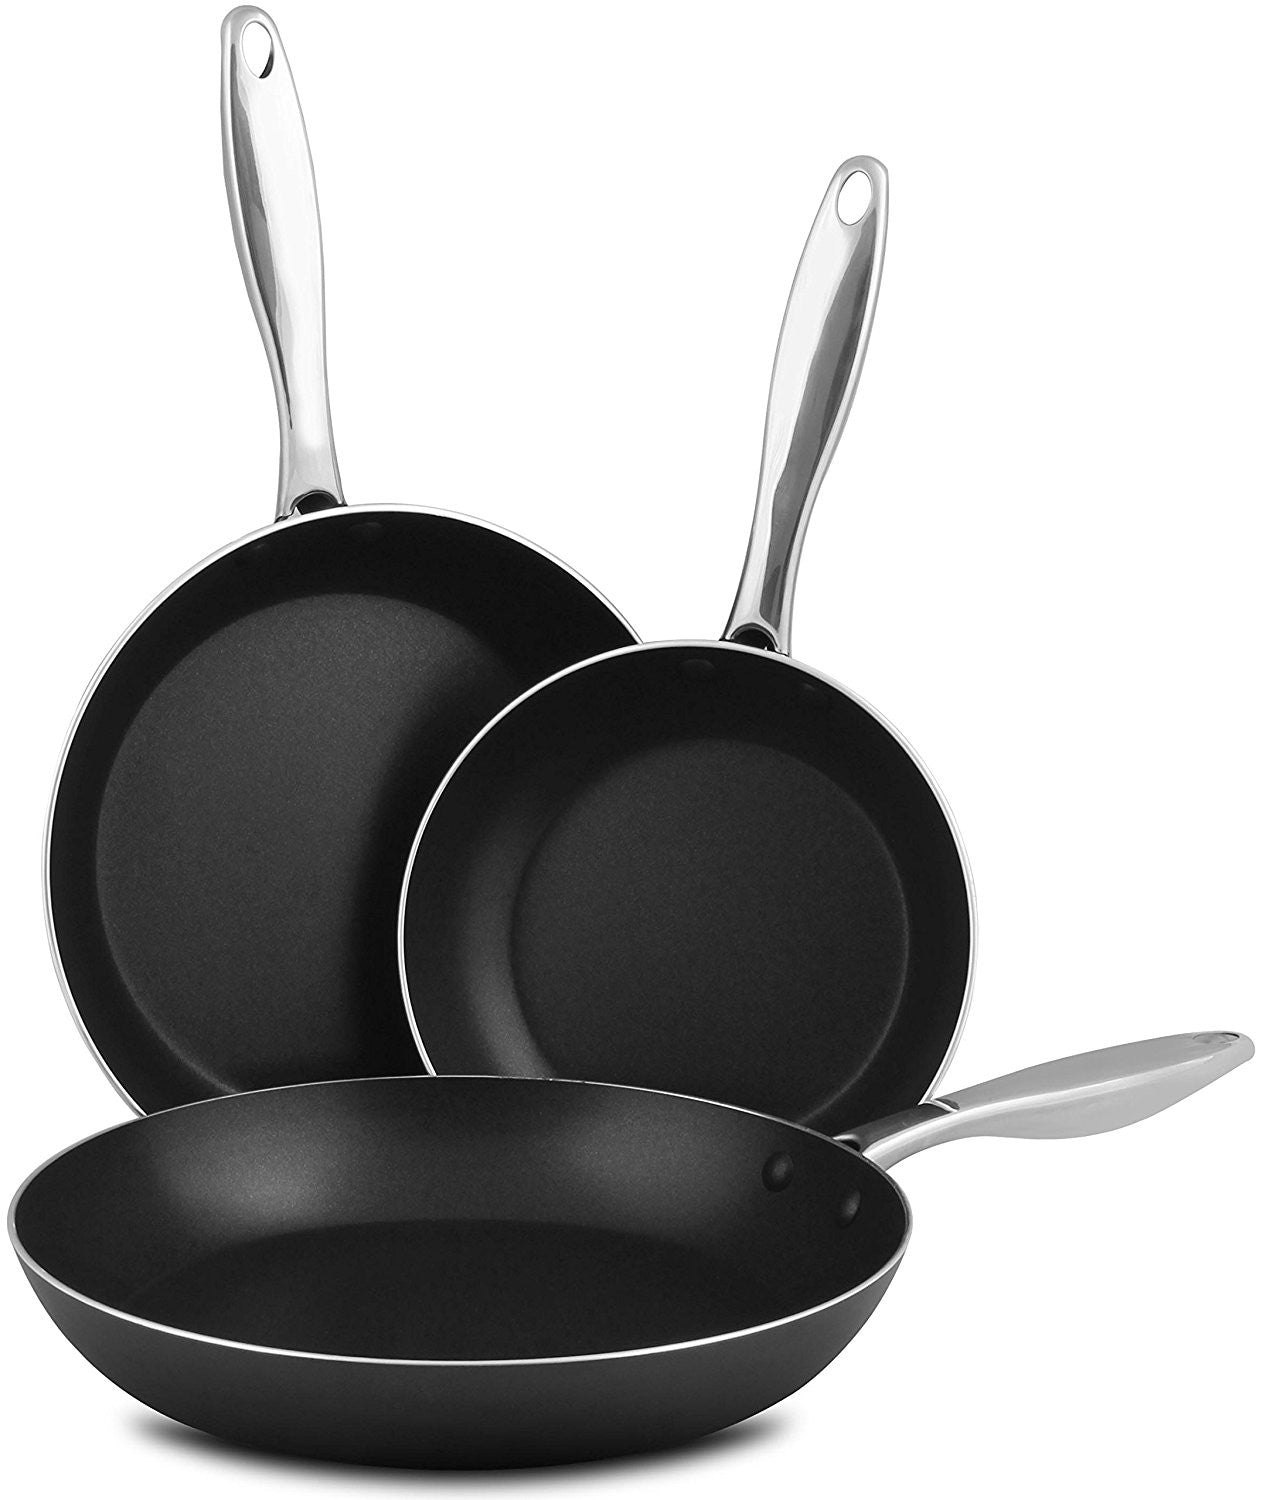 Aluminium Nonstick Frying Pan Set